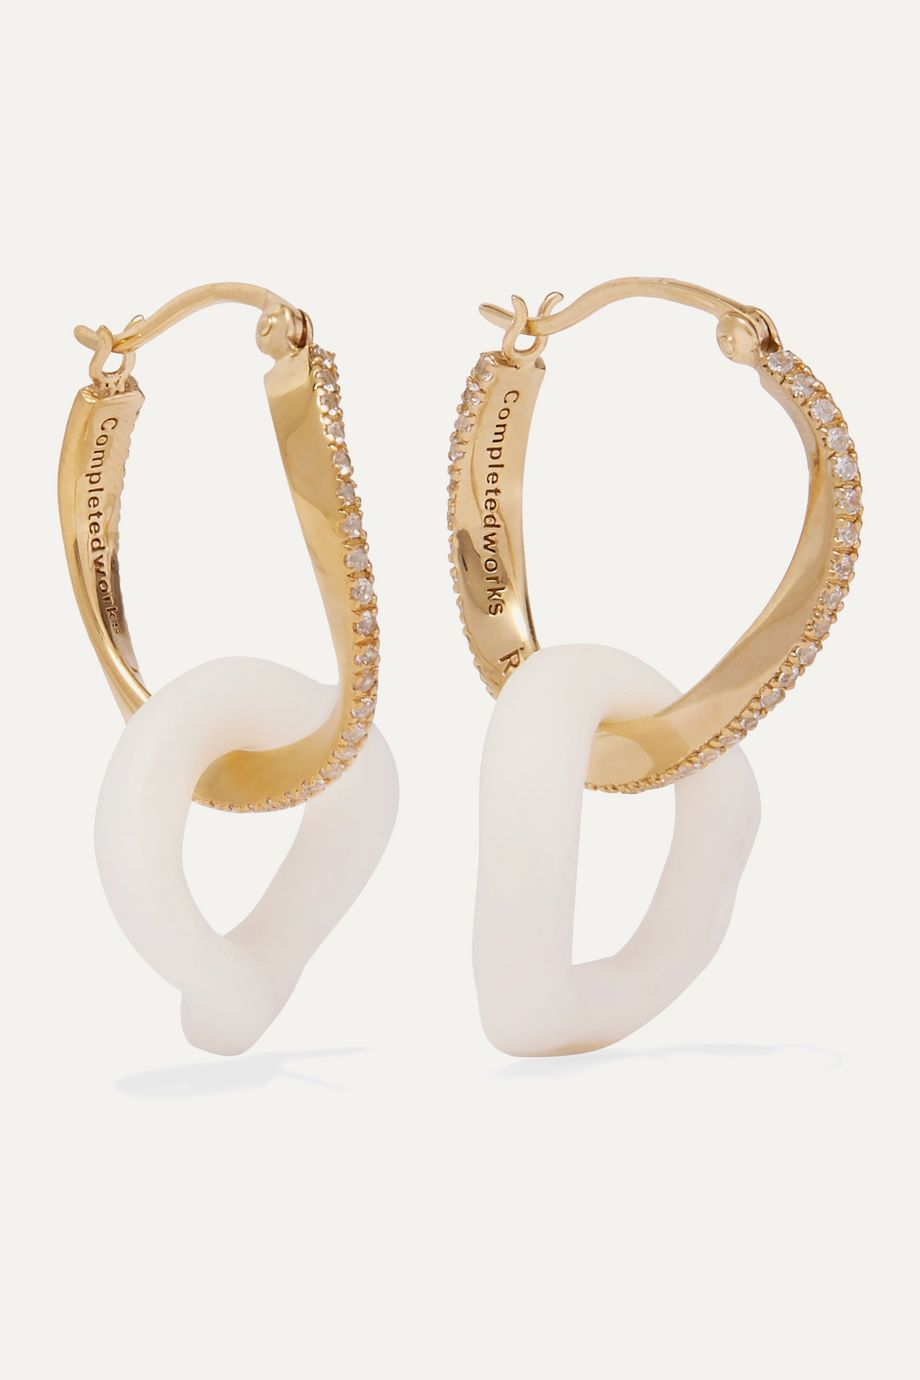 Completedworks Flawed Logic gold vermeil, topaz and ceramic earrings